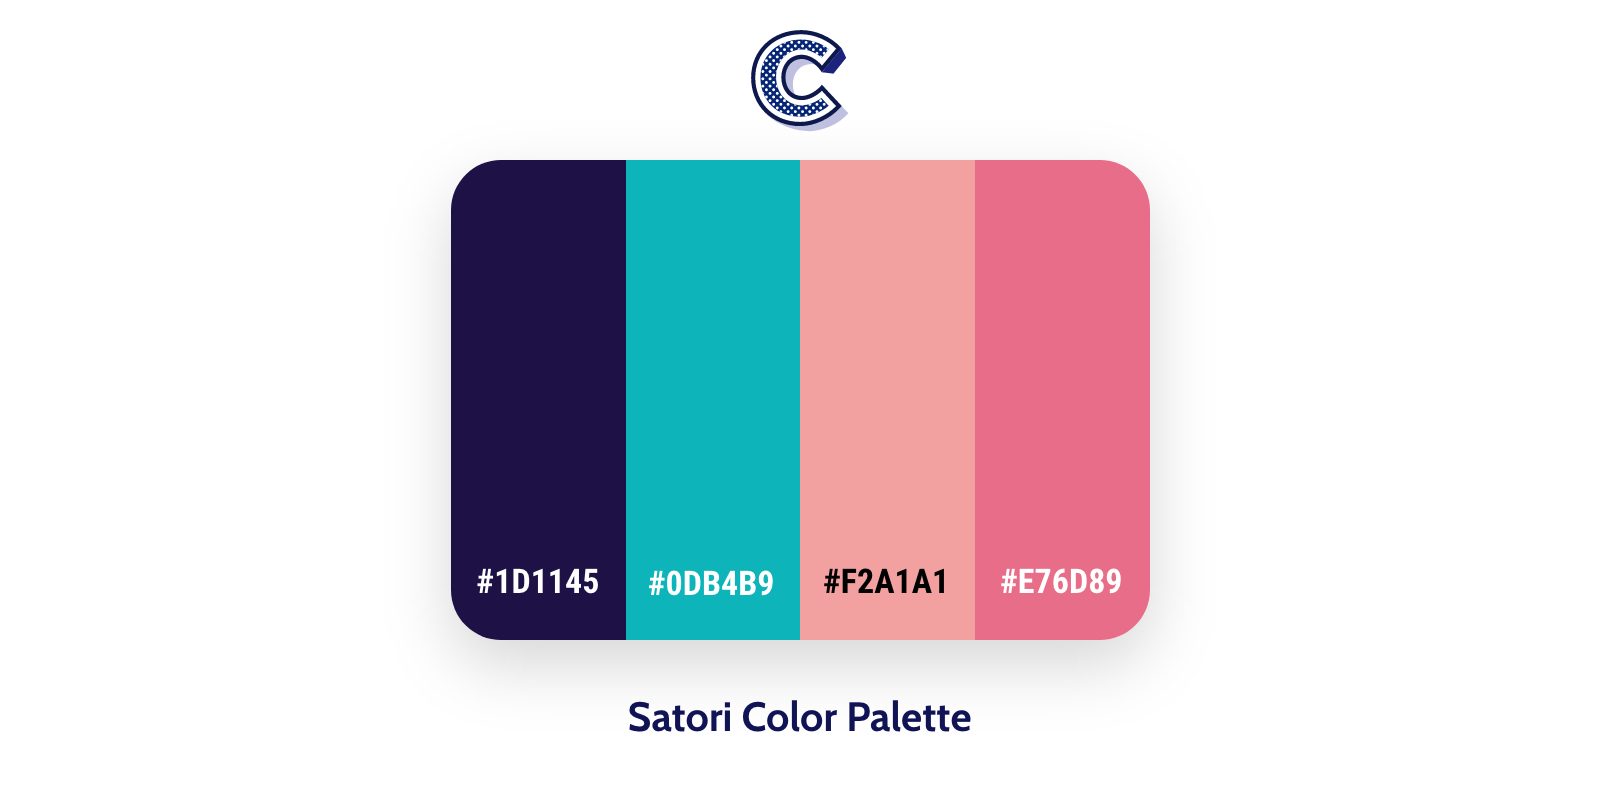 the featured image of satori color palette